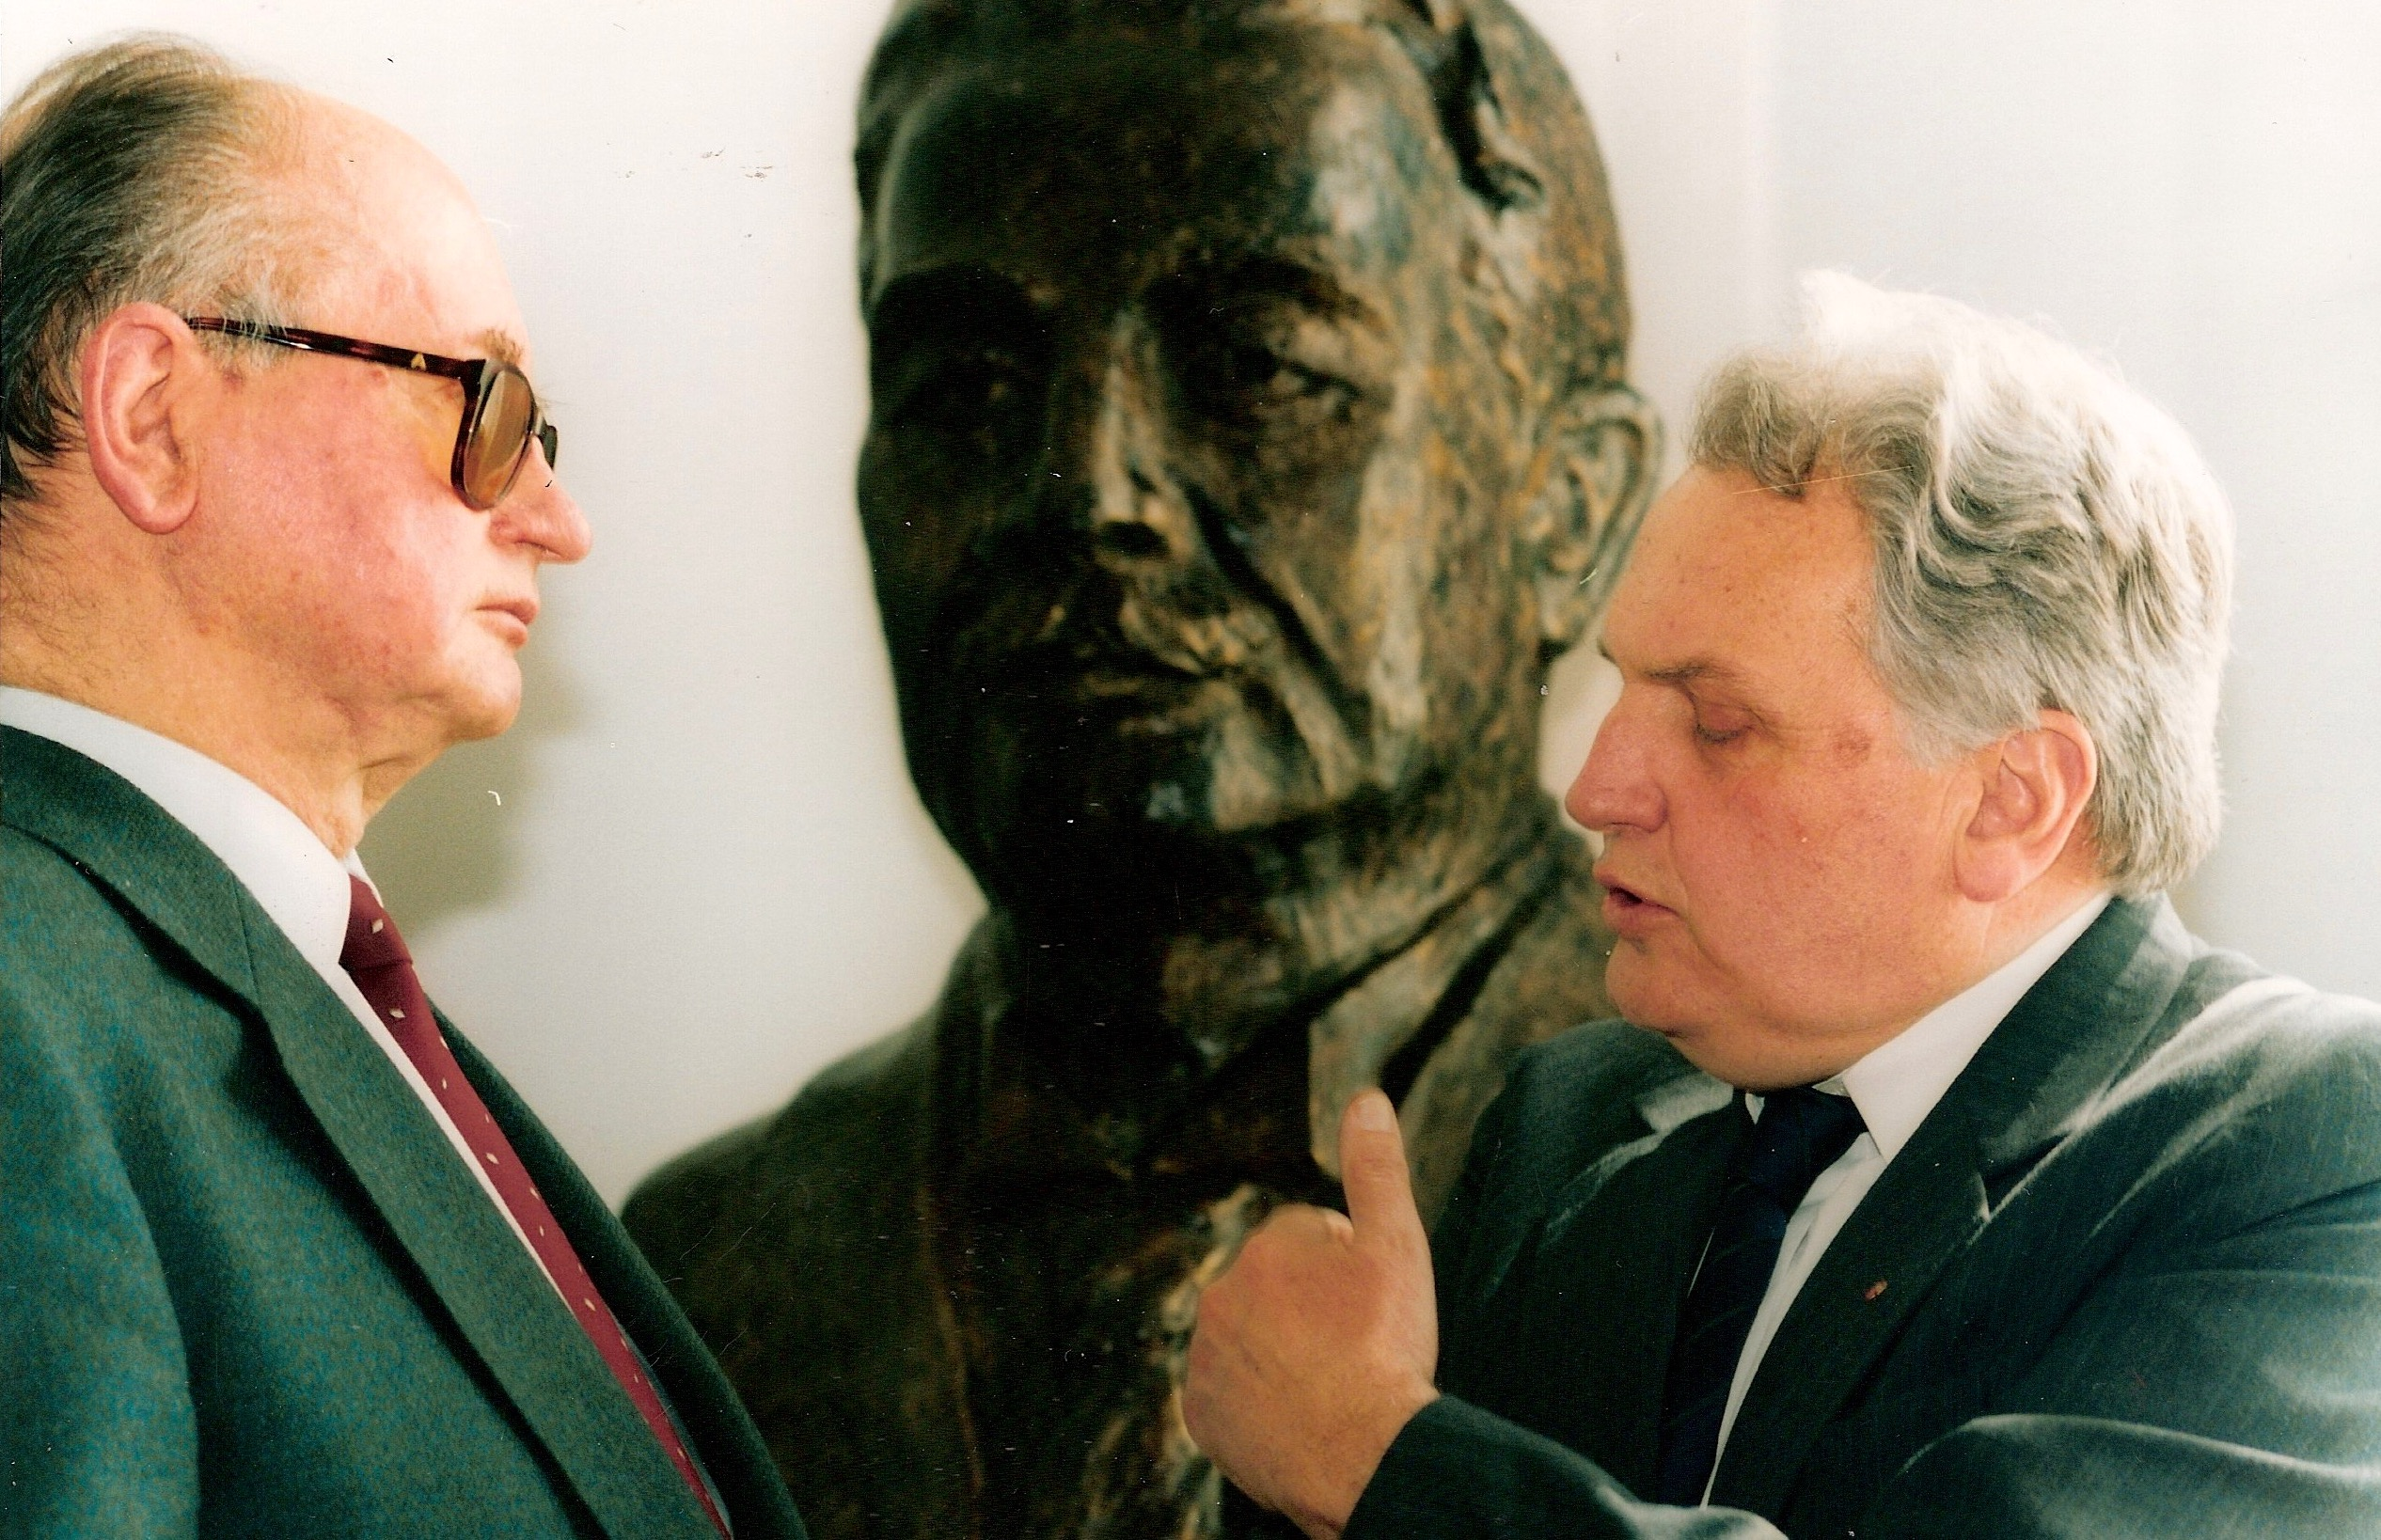 Jerzy Wiatr (right) with Wojciech Jaruzelski in the Polish parliament next to a bust of Ignacy Daszyński, Polish socialist politician, Warsaw, 1994